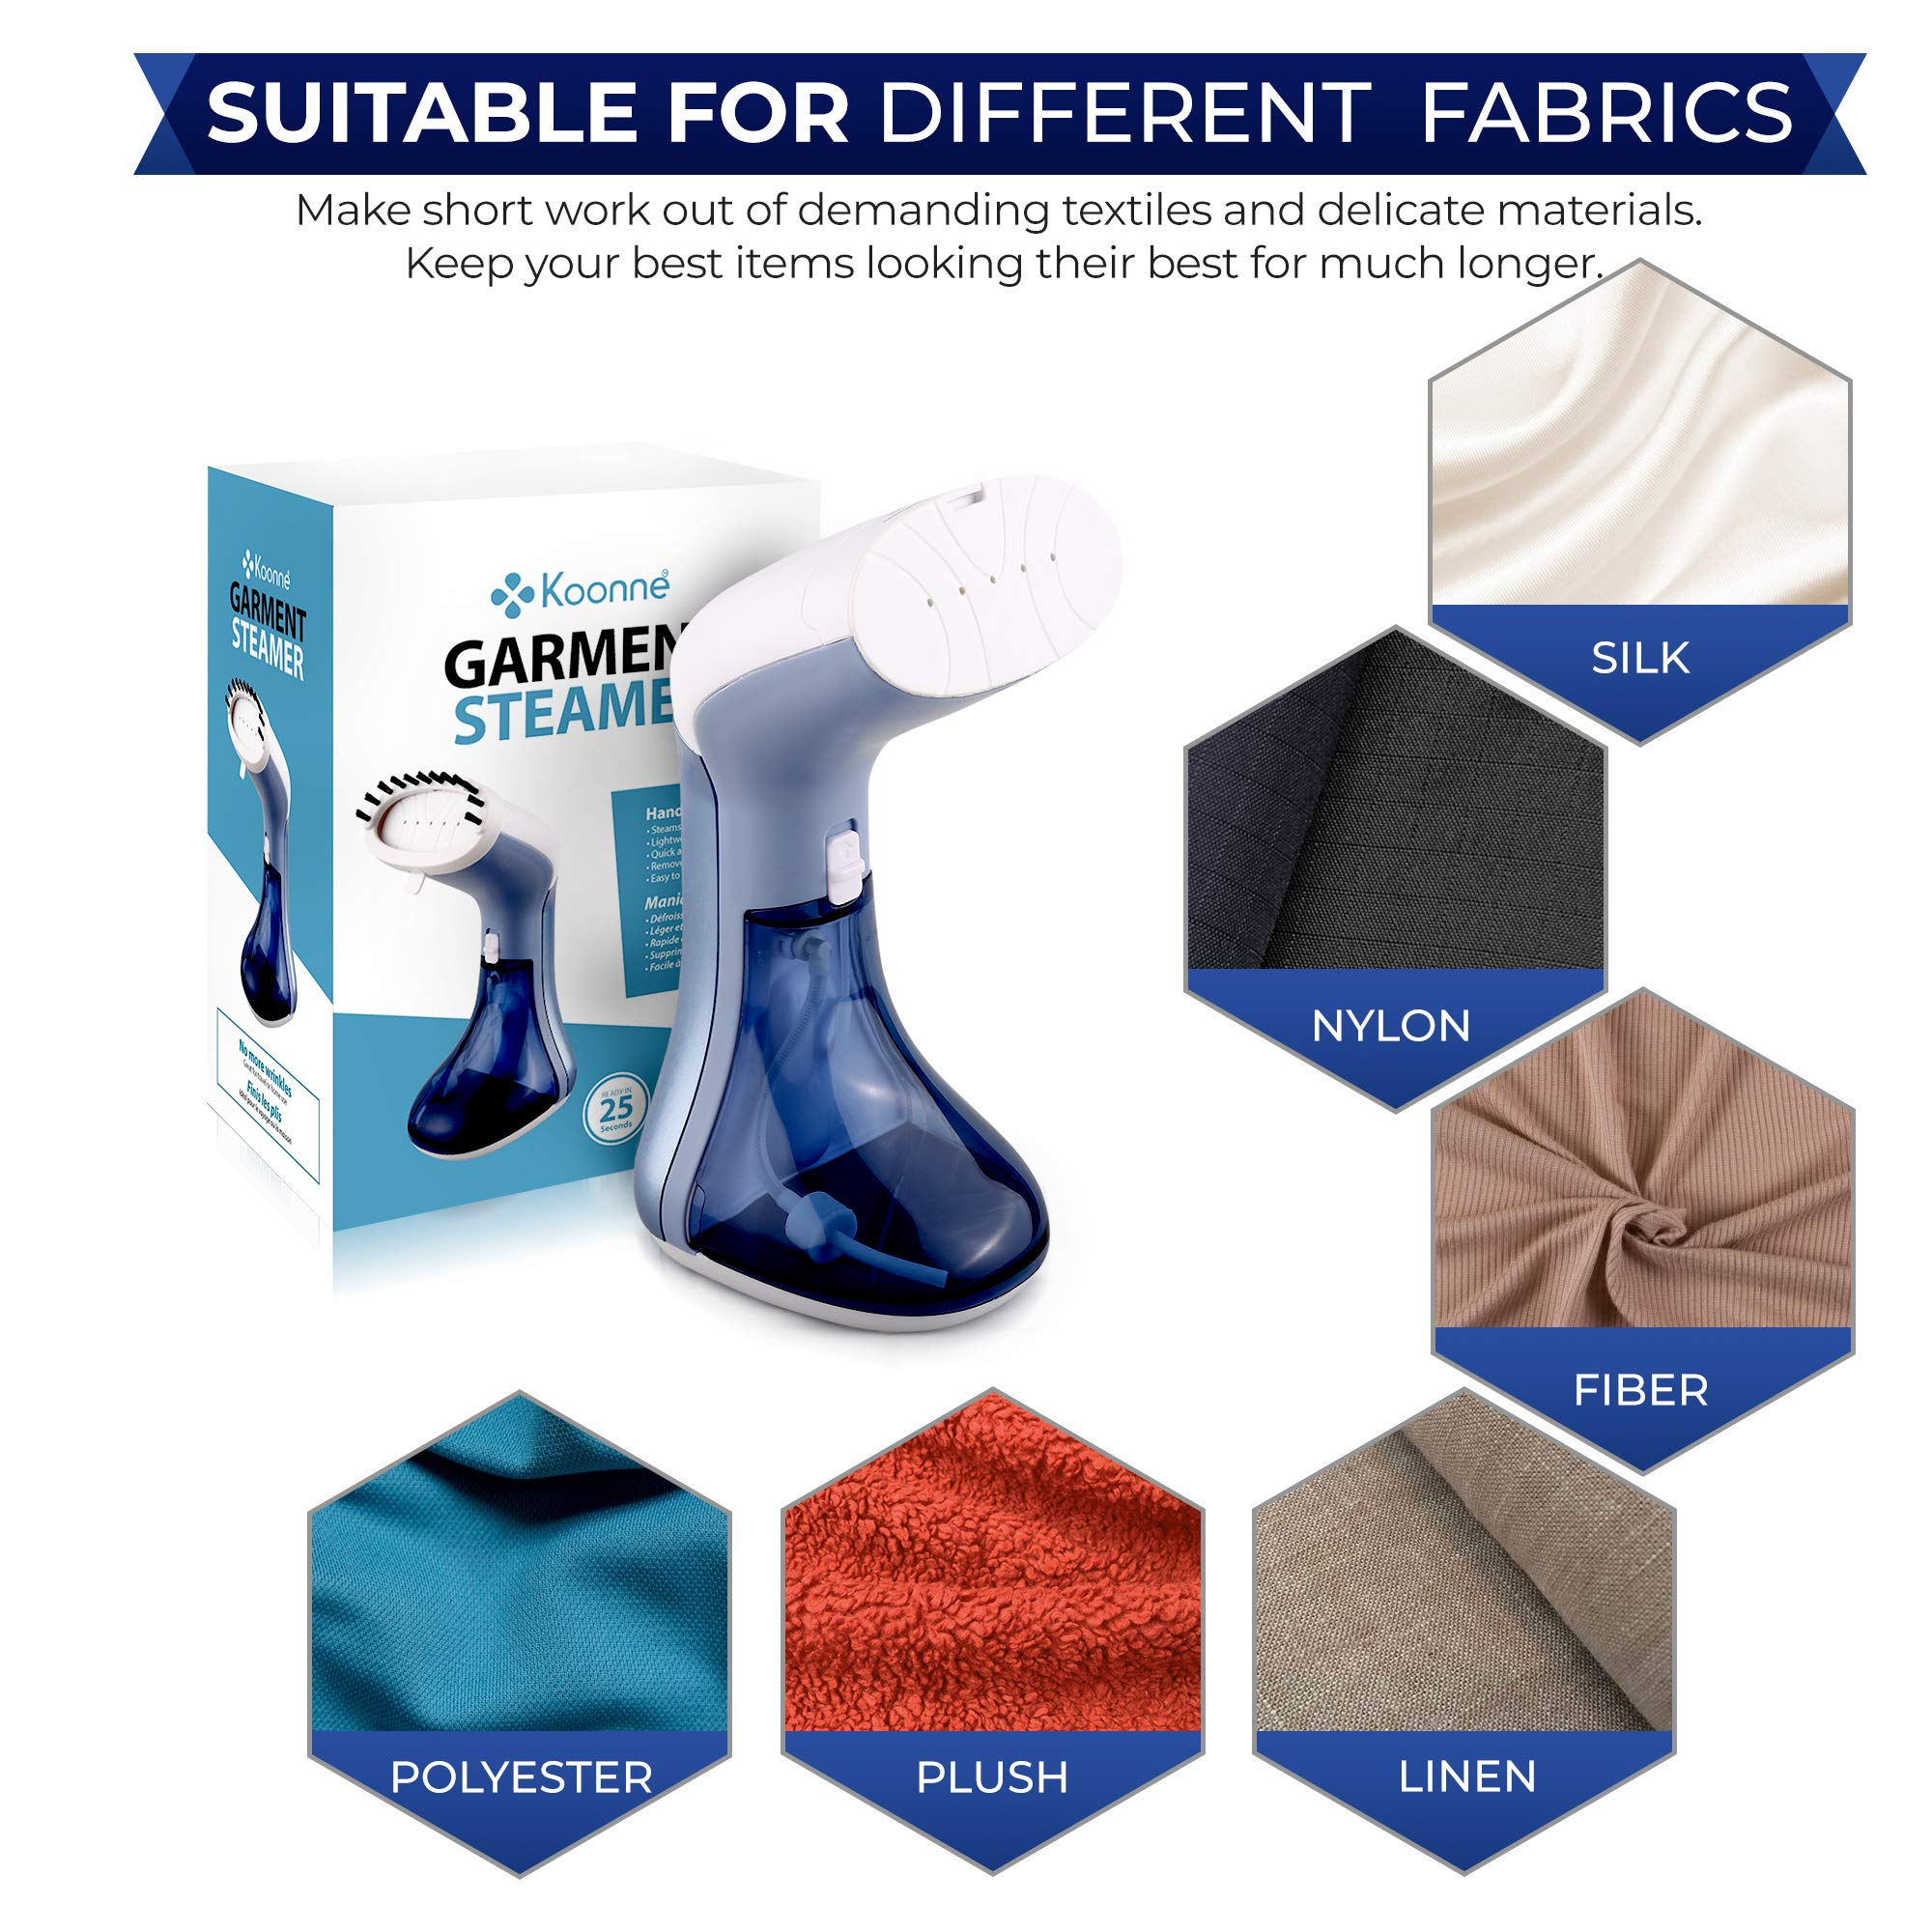 KOONNE Mini Garment Steamer | For hard water |Quick Heating for Wrinkle Free Clothes, Curtains & Furniture | Lightweight & Portable Handheld Iron for Travelling